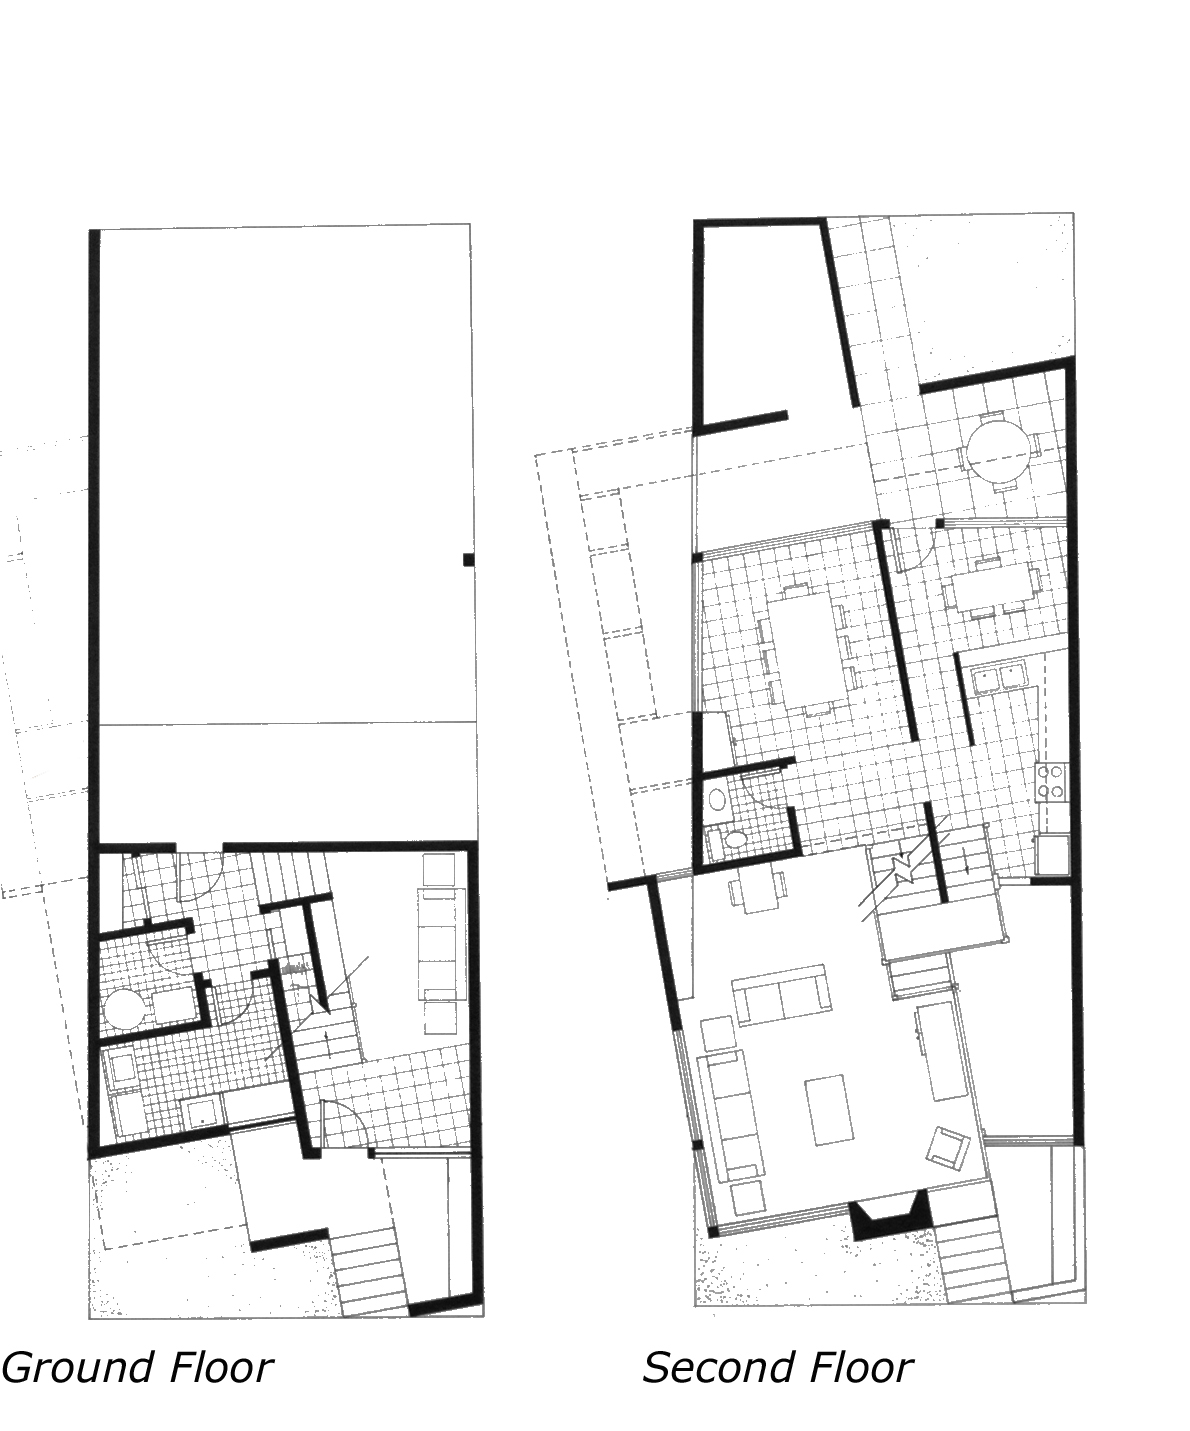 Rowhouse Floor Plans Unique House Plans